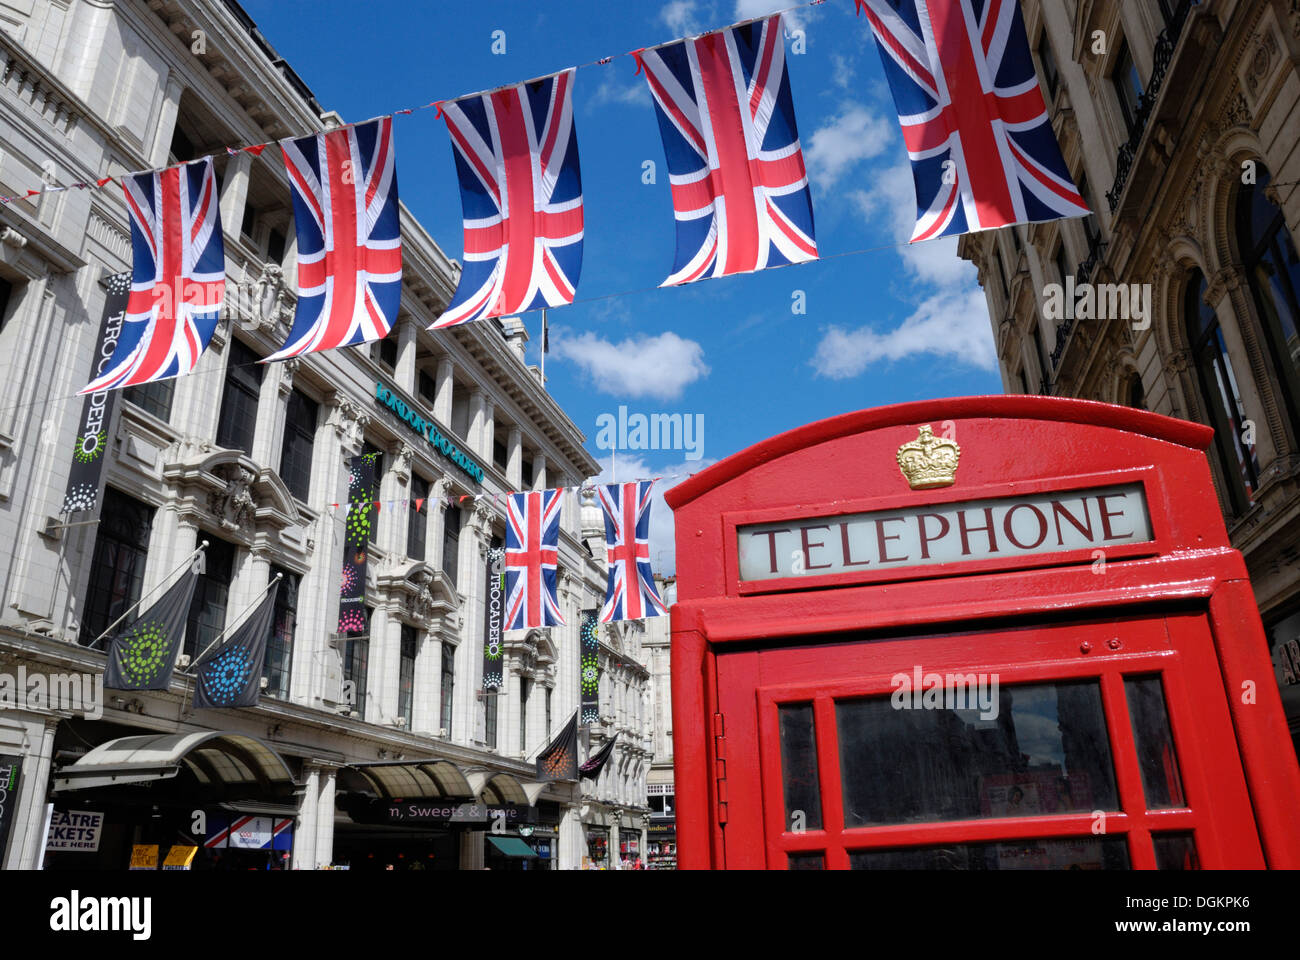 Union Jack flags and red telephone box near the Trocadero. - Stock Image